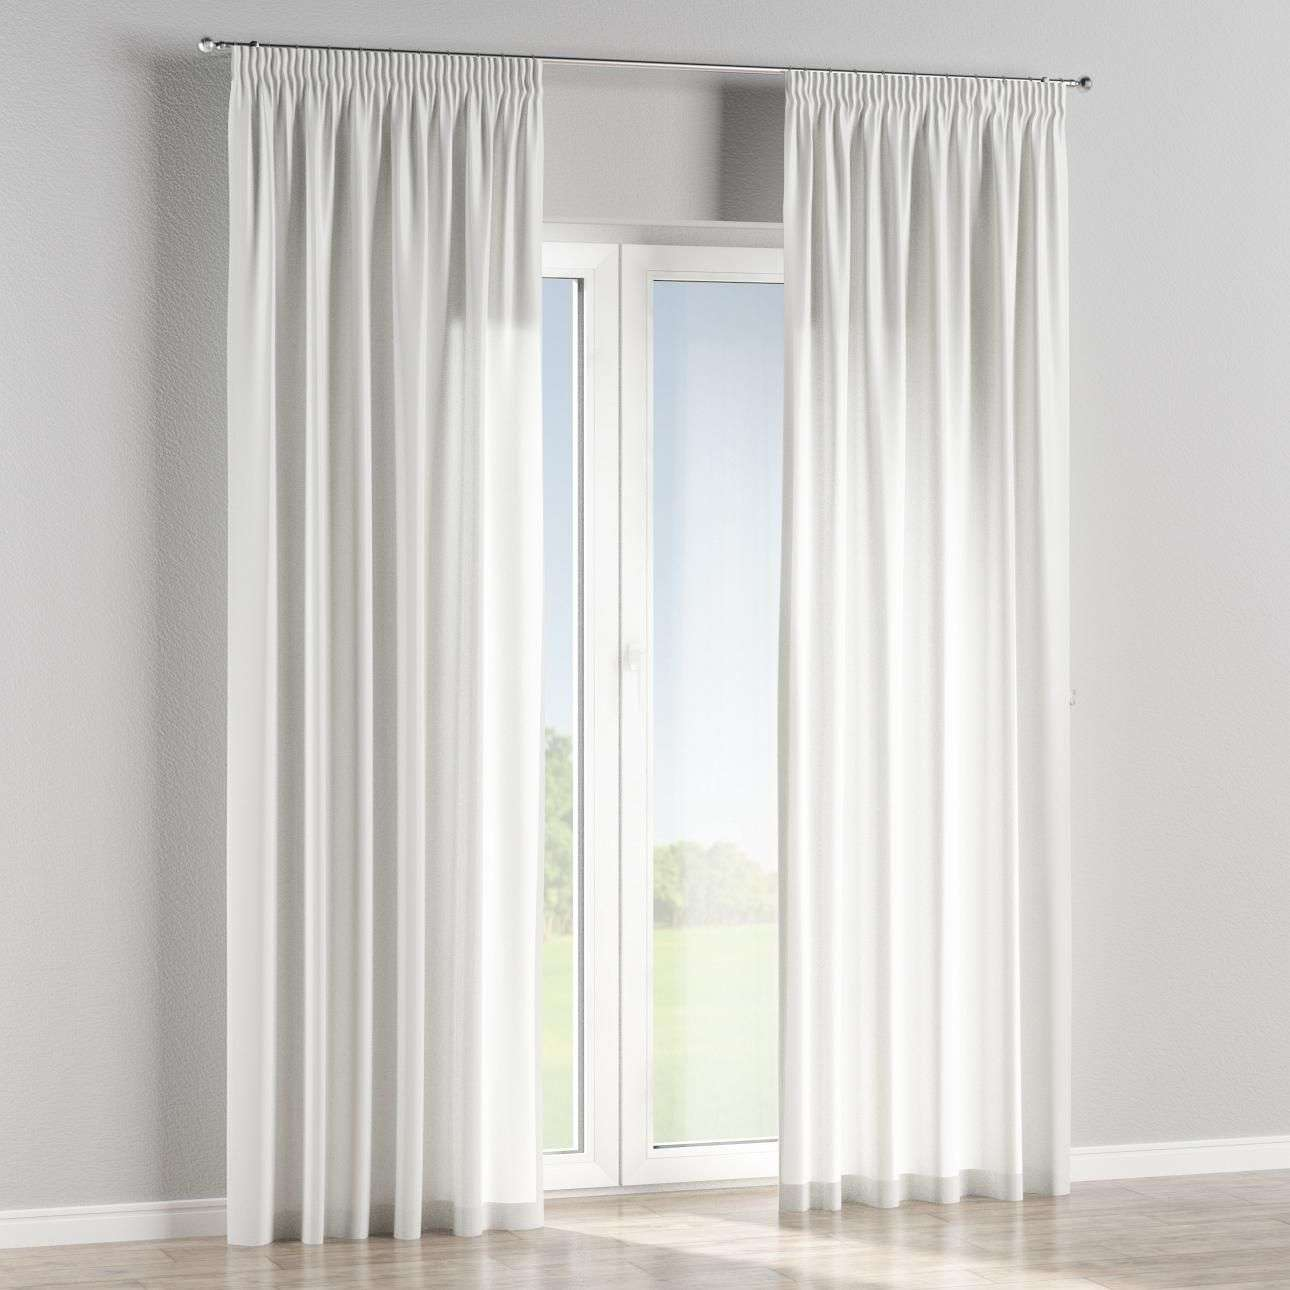 Pencil pleat lined curtains in collection Marina, fabric: 140-60